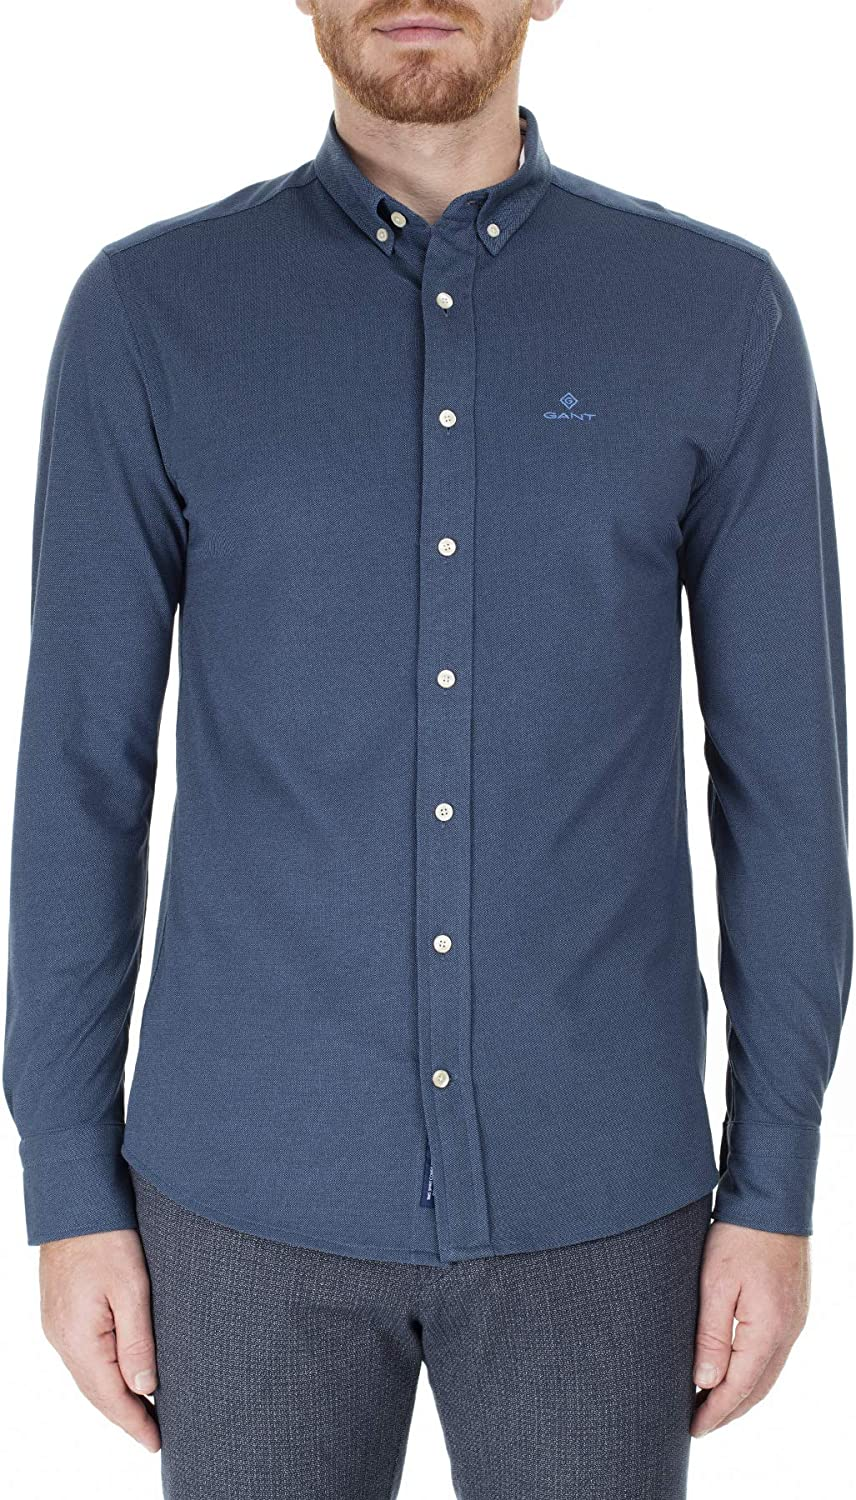 Gant Pique Solid - Camisa de corte regular en color azul marino: Amazon.es: Ropa y accesorios